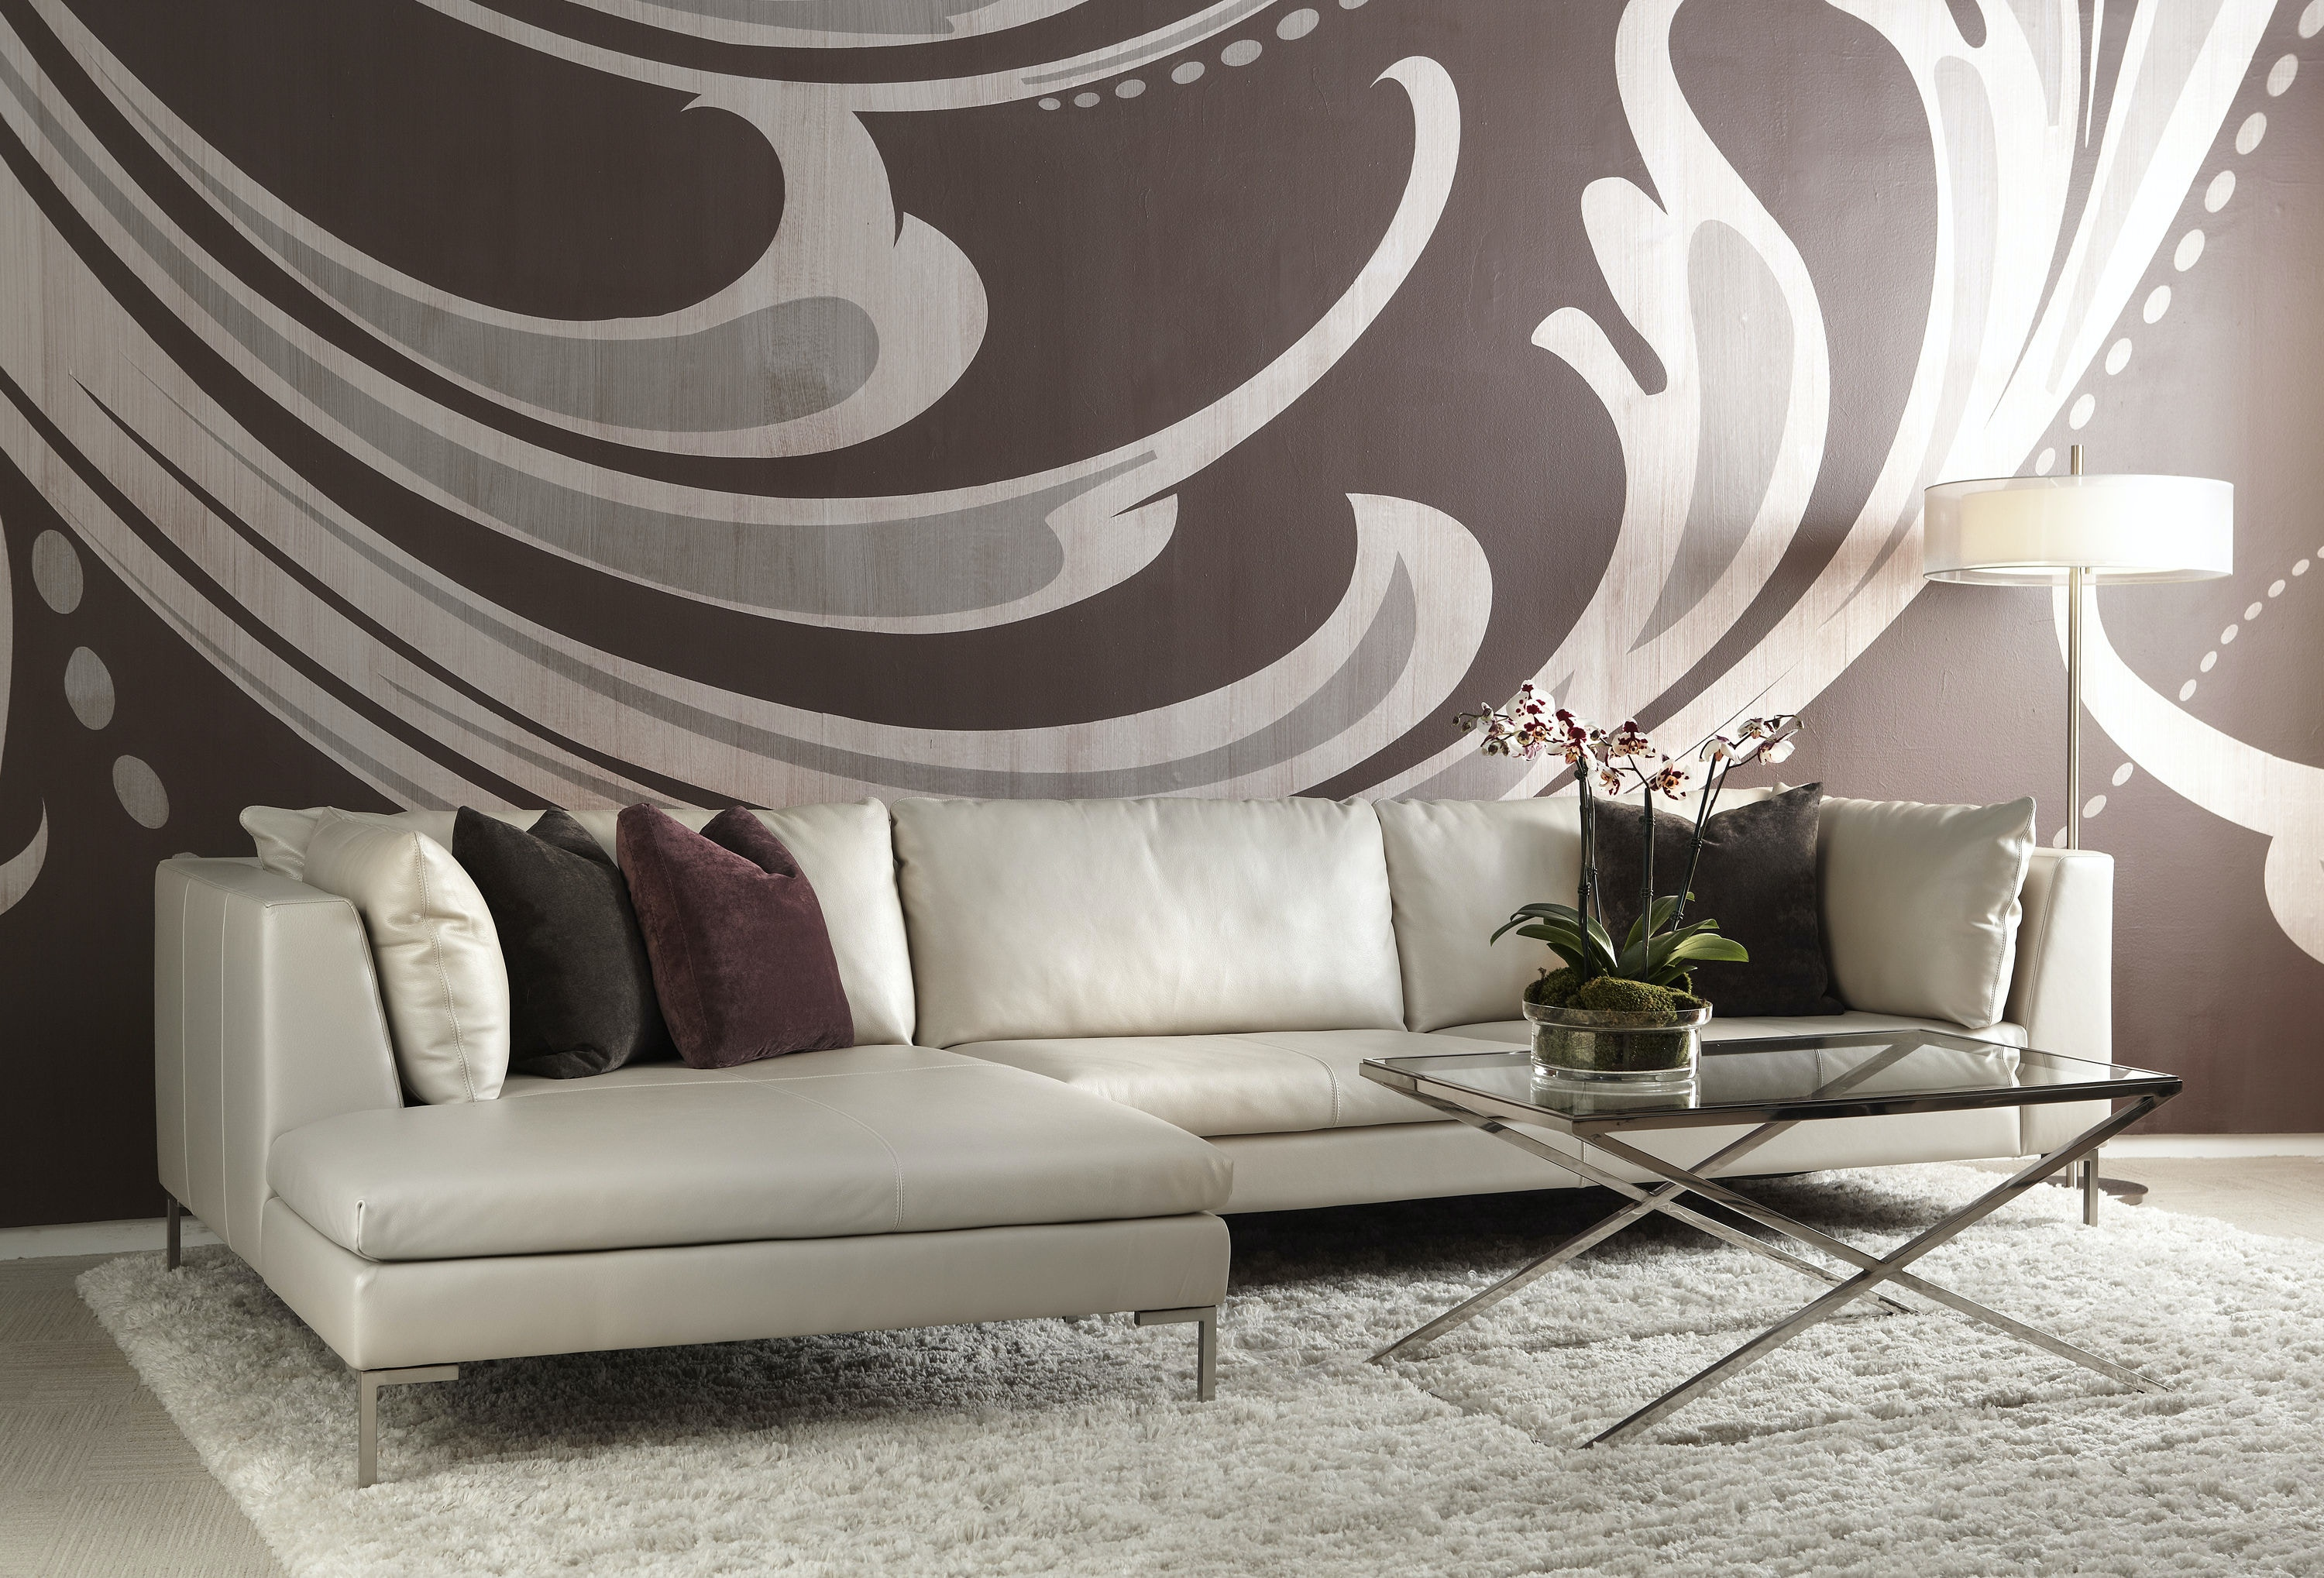 Style design american leather inspirational sofa